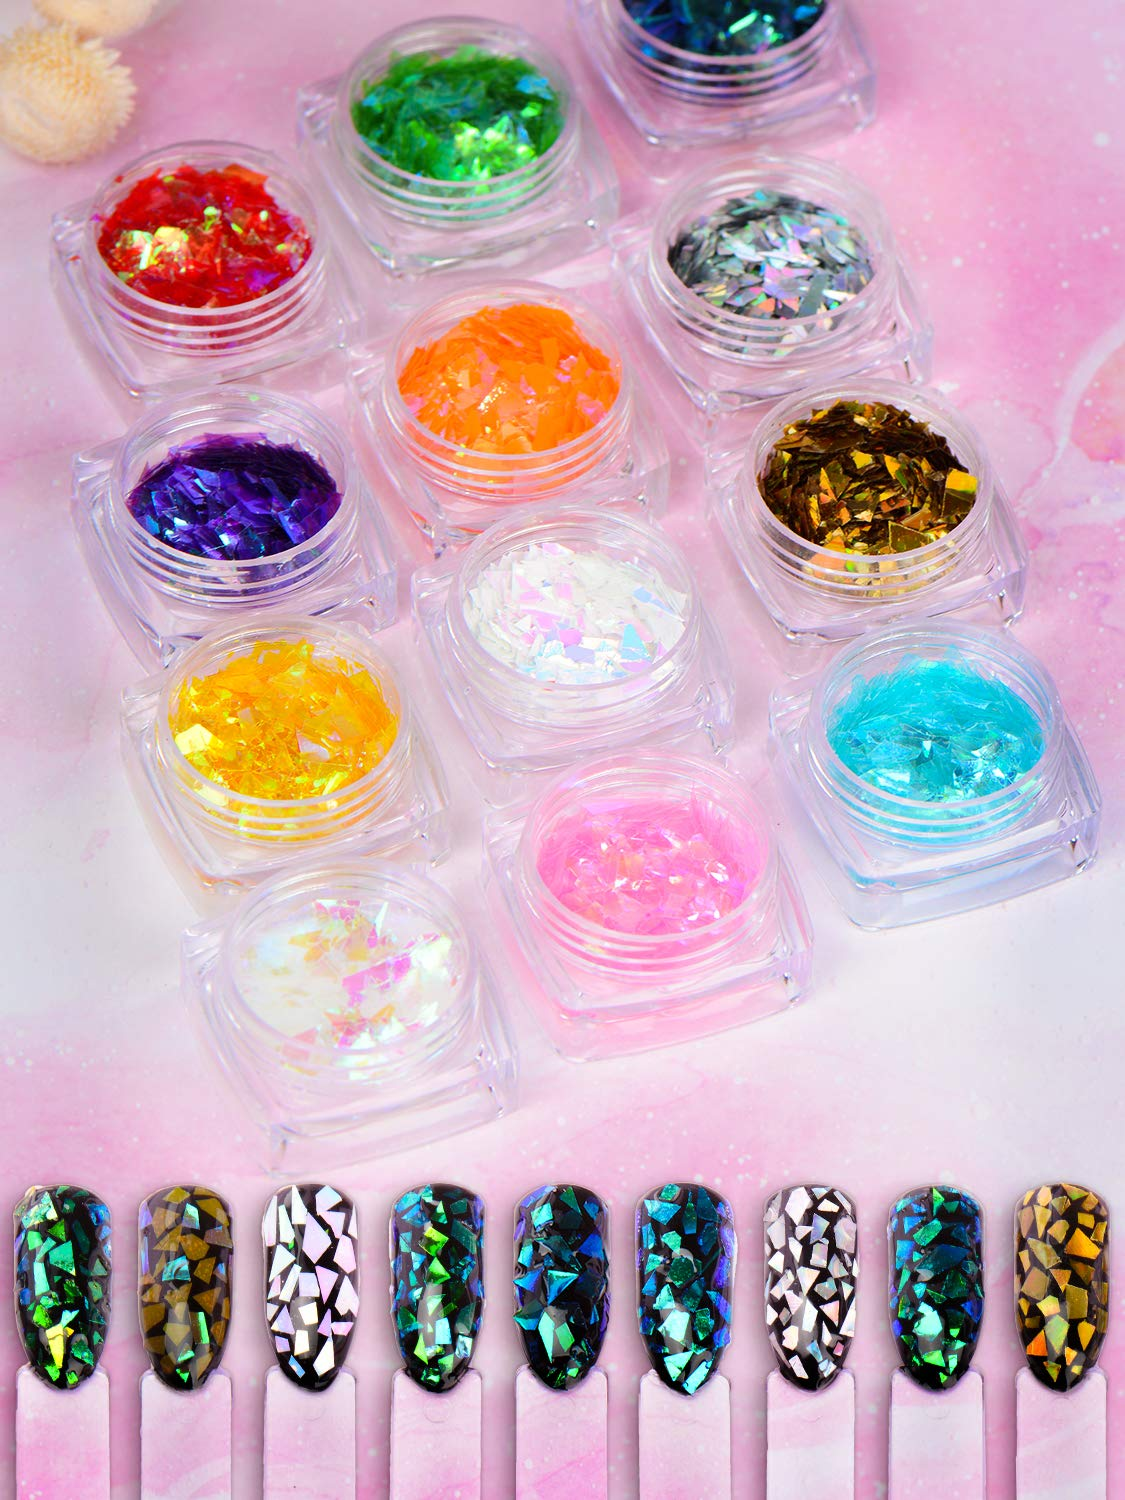 Warmfits Mermaid Nail Glitter Set 12 Boxes Nail Sequins Flakes Set Irregular Iridescent for Nails Art Manicure Tips Decoration Eyes Face Body Hair DIY Craft : Beauty & Personal Care